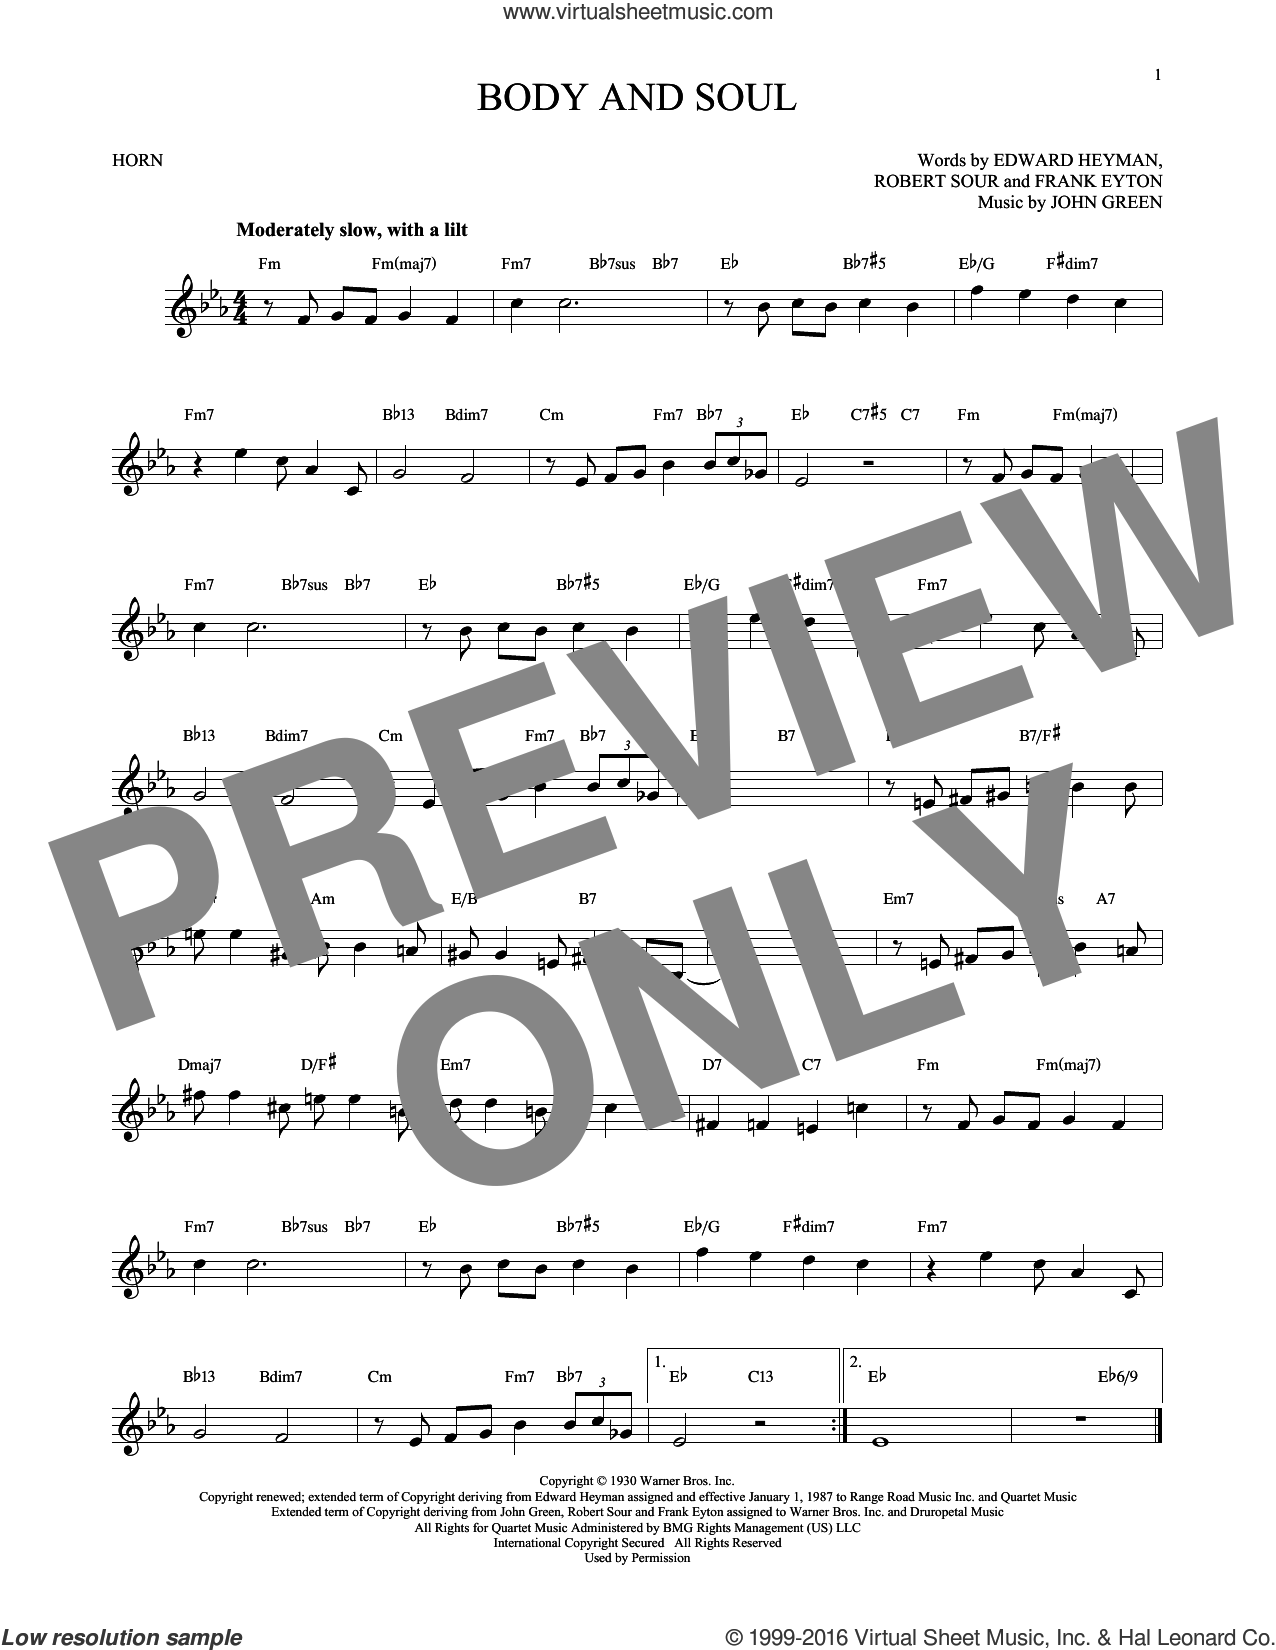 Body And Soul sheet music for horn solo by Edward Heyman, Tony Bennett & Amy Winehouse, Frank Eyton, Johnny Green and Robert Sour, intermediate skill level